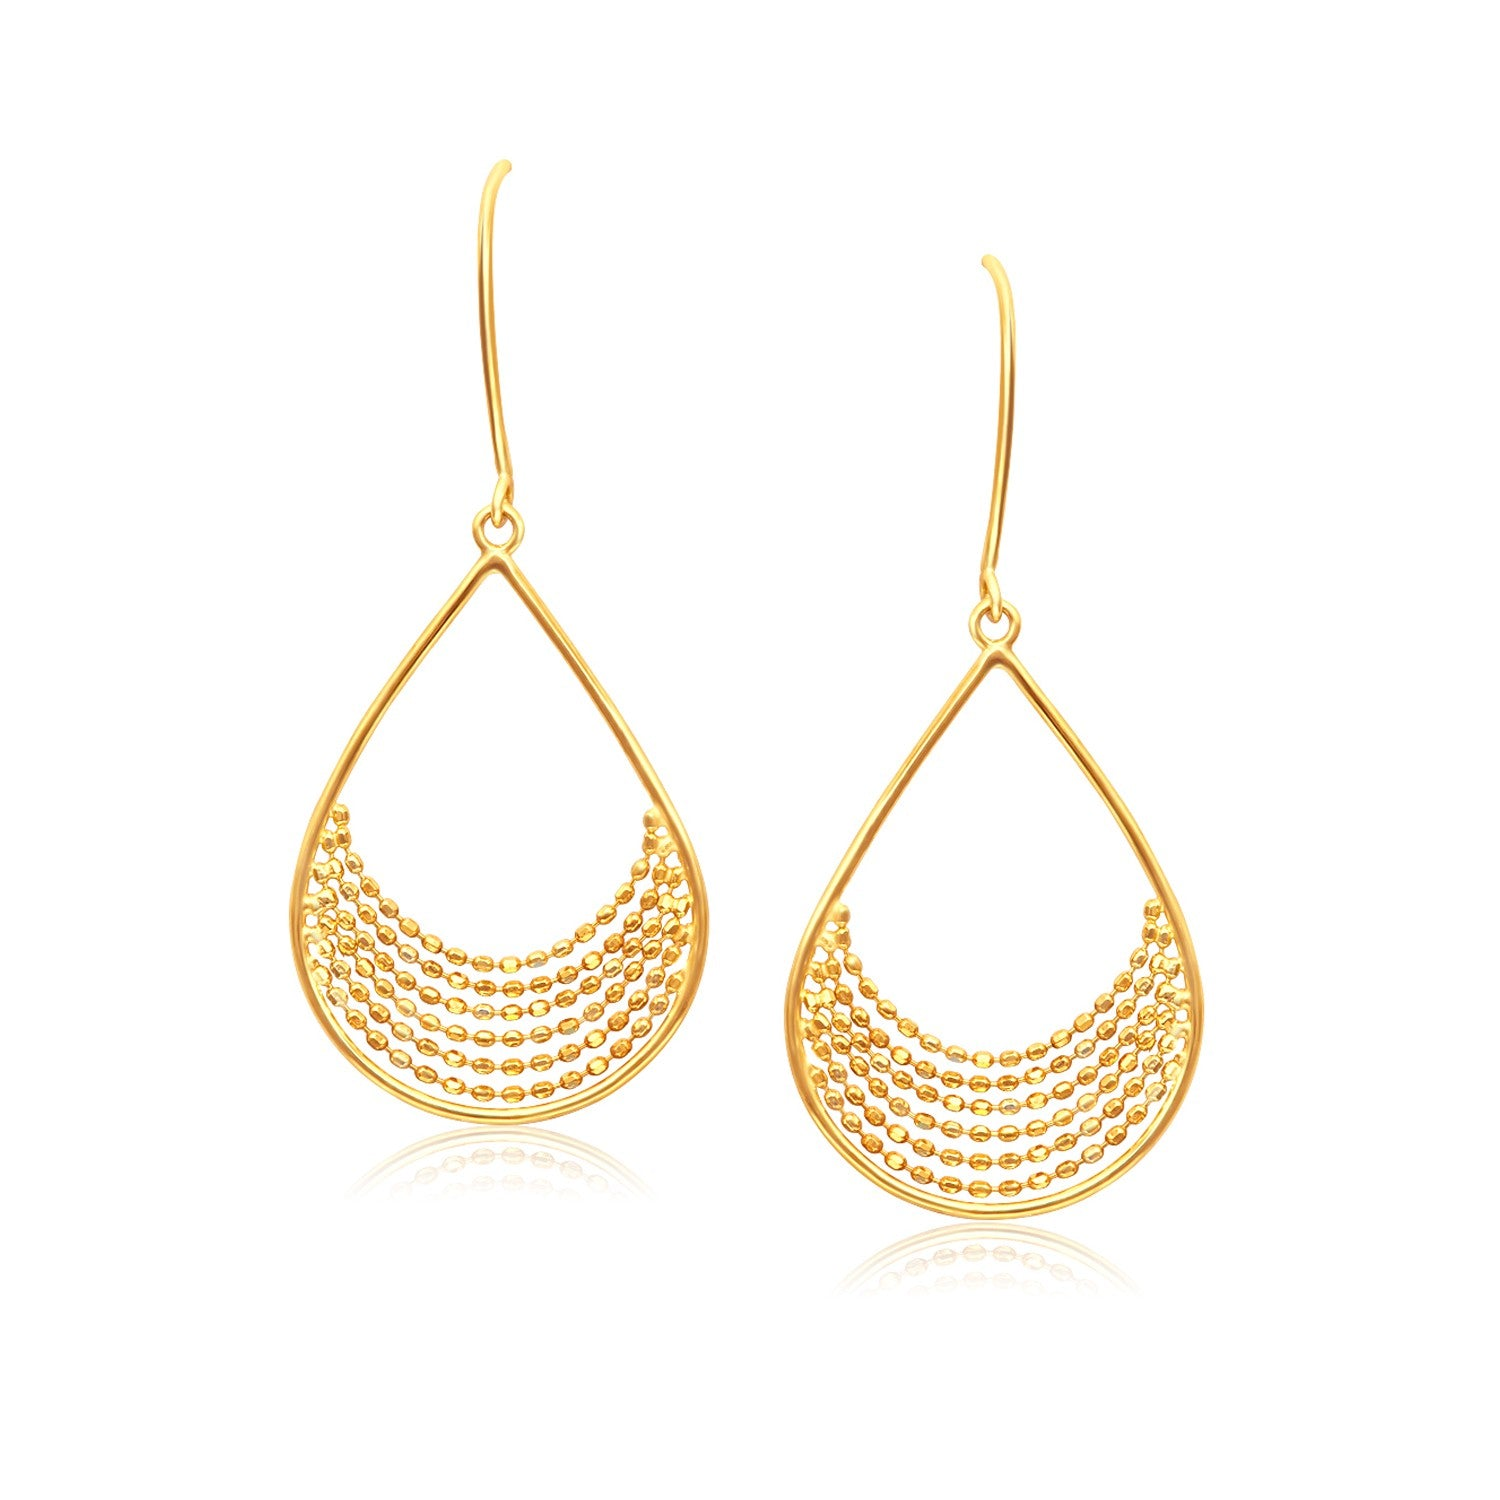 14K Yellow Gold Open Teardrop with Layered Bead Chain Earrings